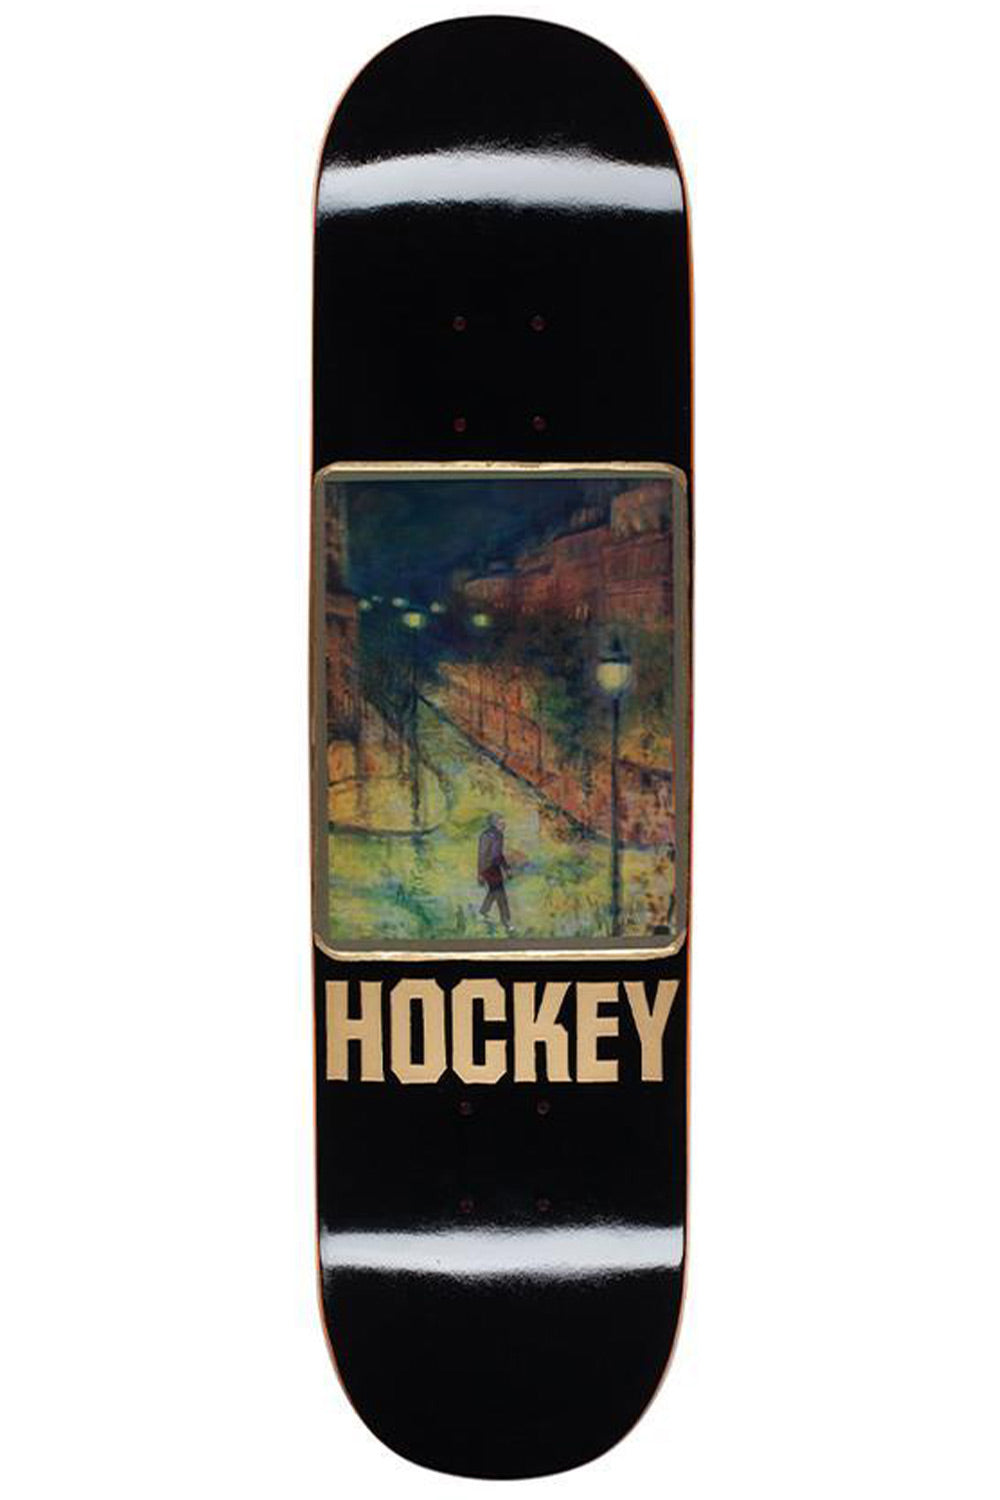 Buy Hockey Kevin Rodrigues Hologram Evening Deck - 8.18"